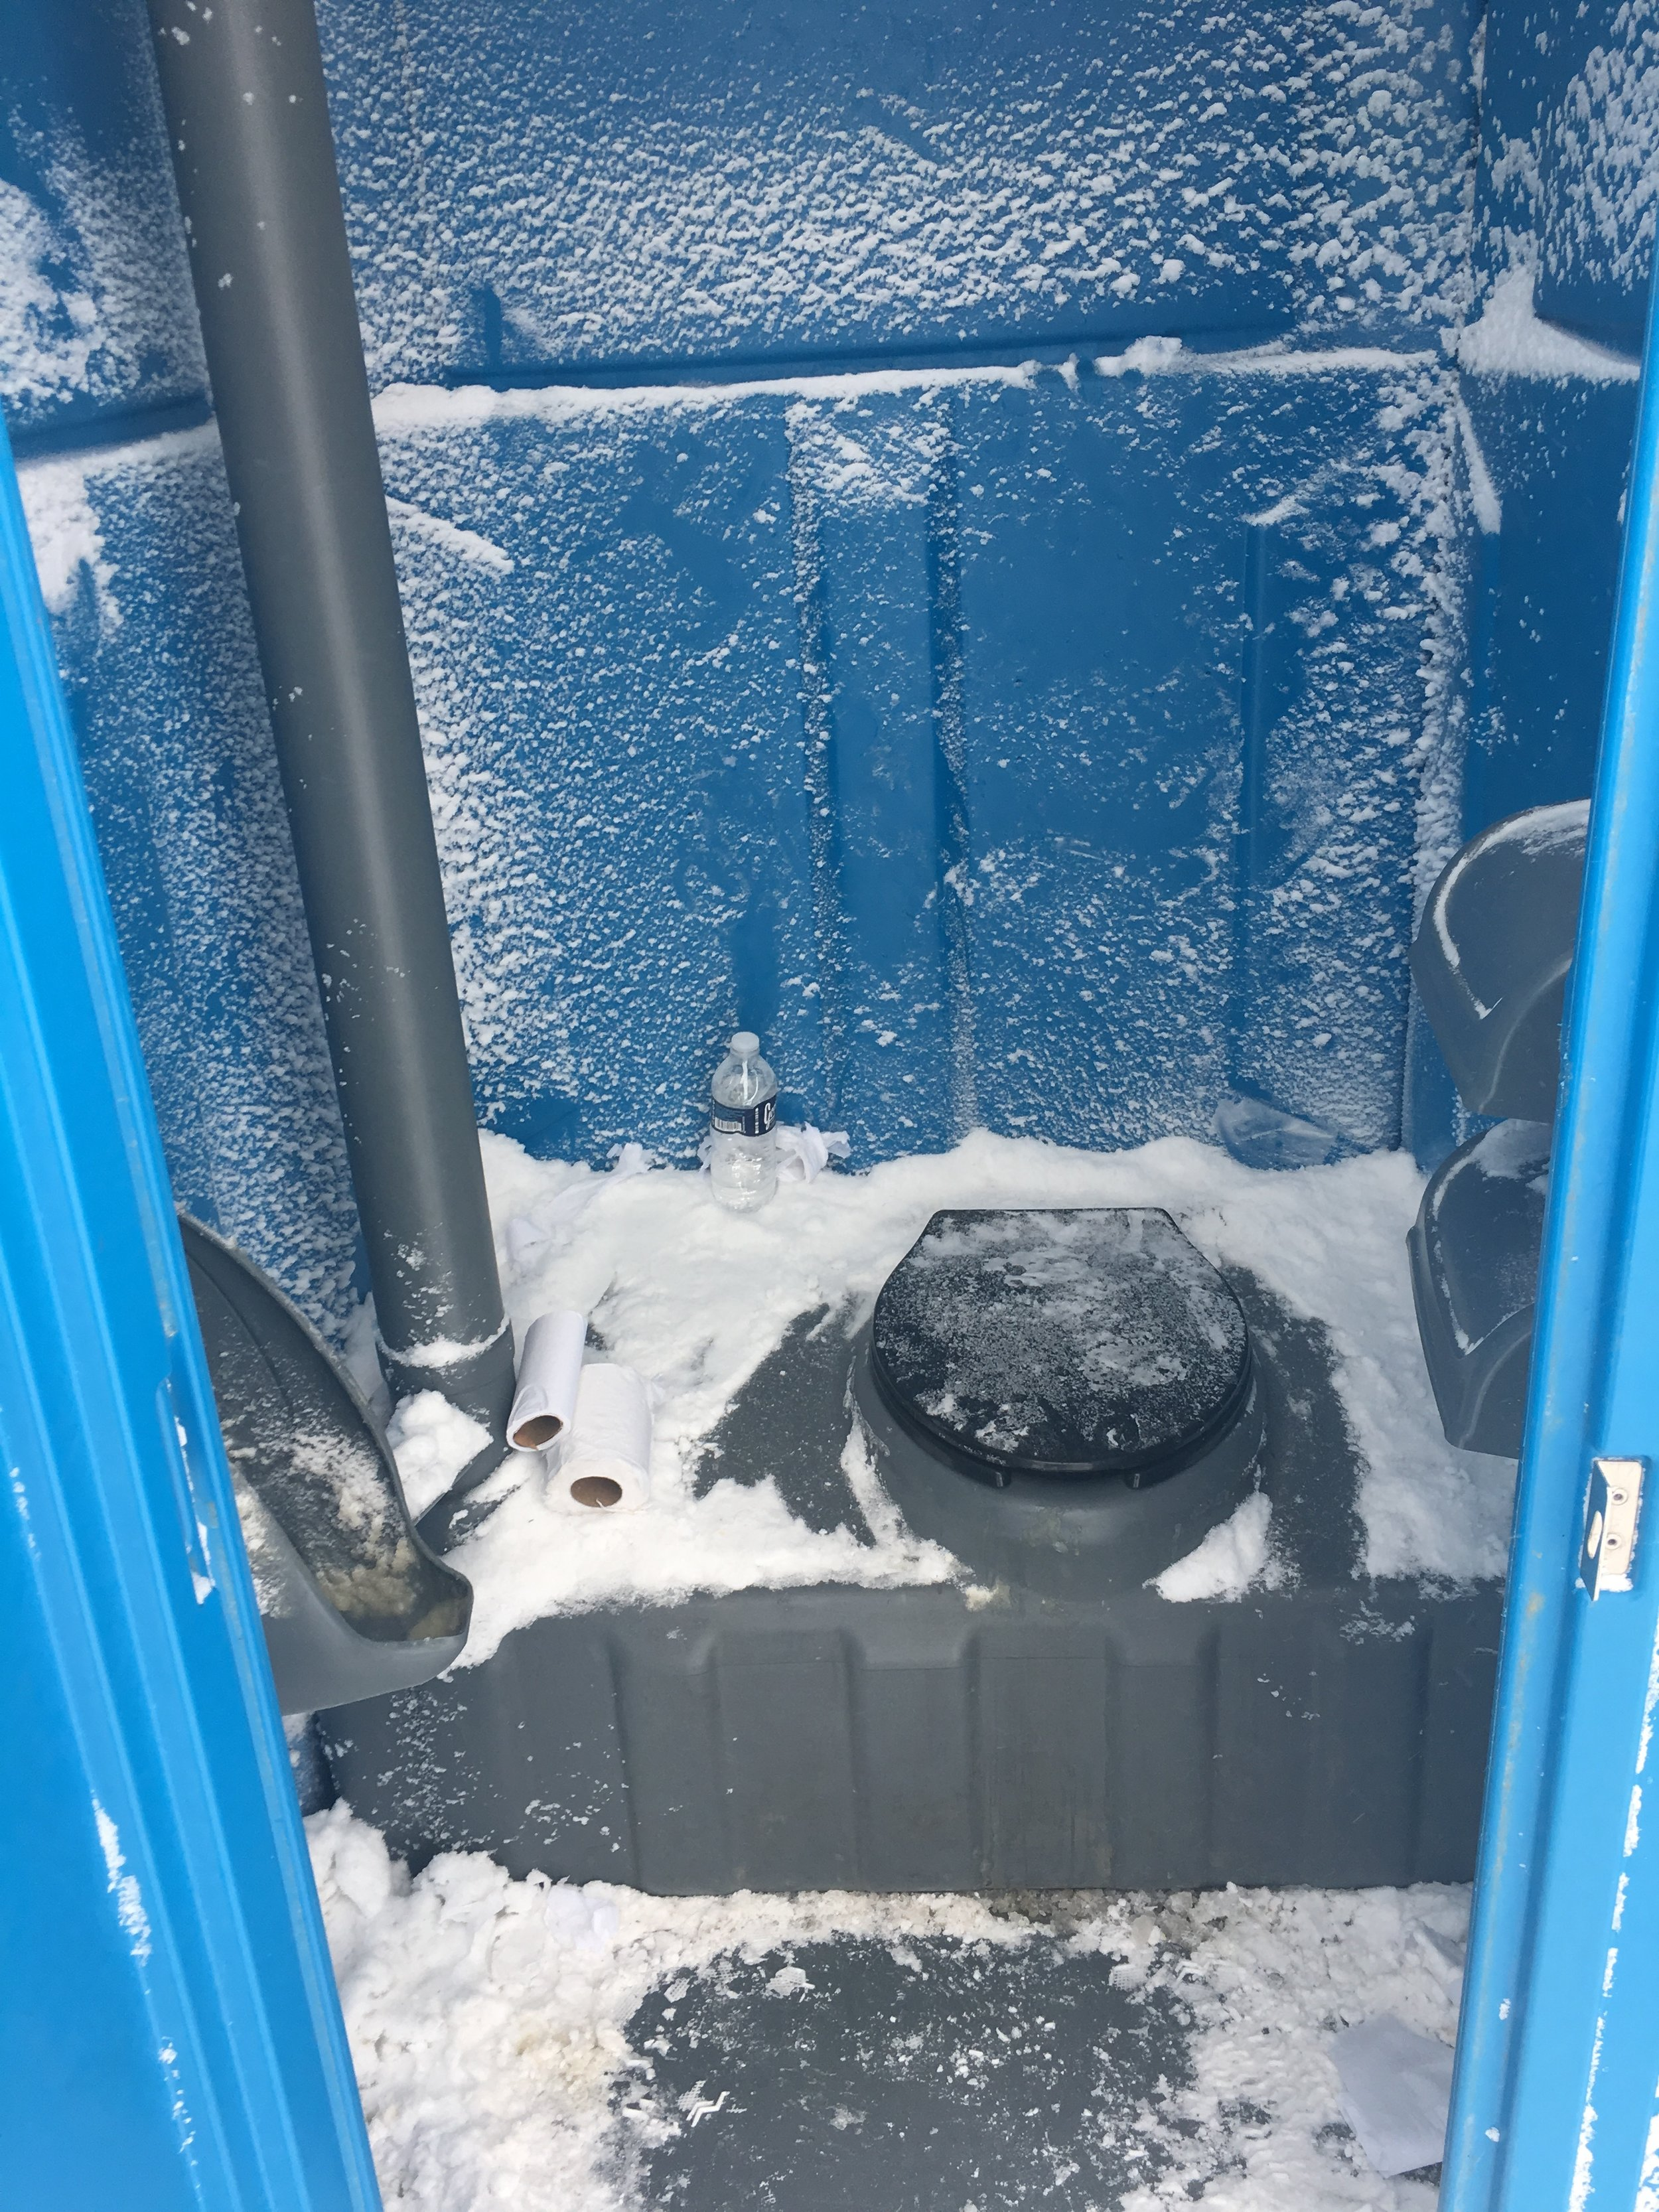 This is what it's like to use a port-a-potty during a blizzard in North Dakota. Photo by Lindsay Hill.